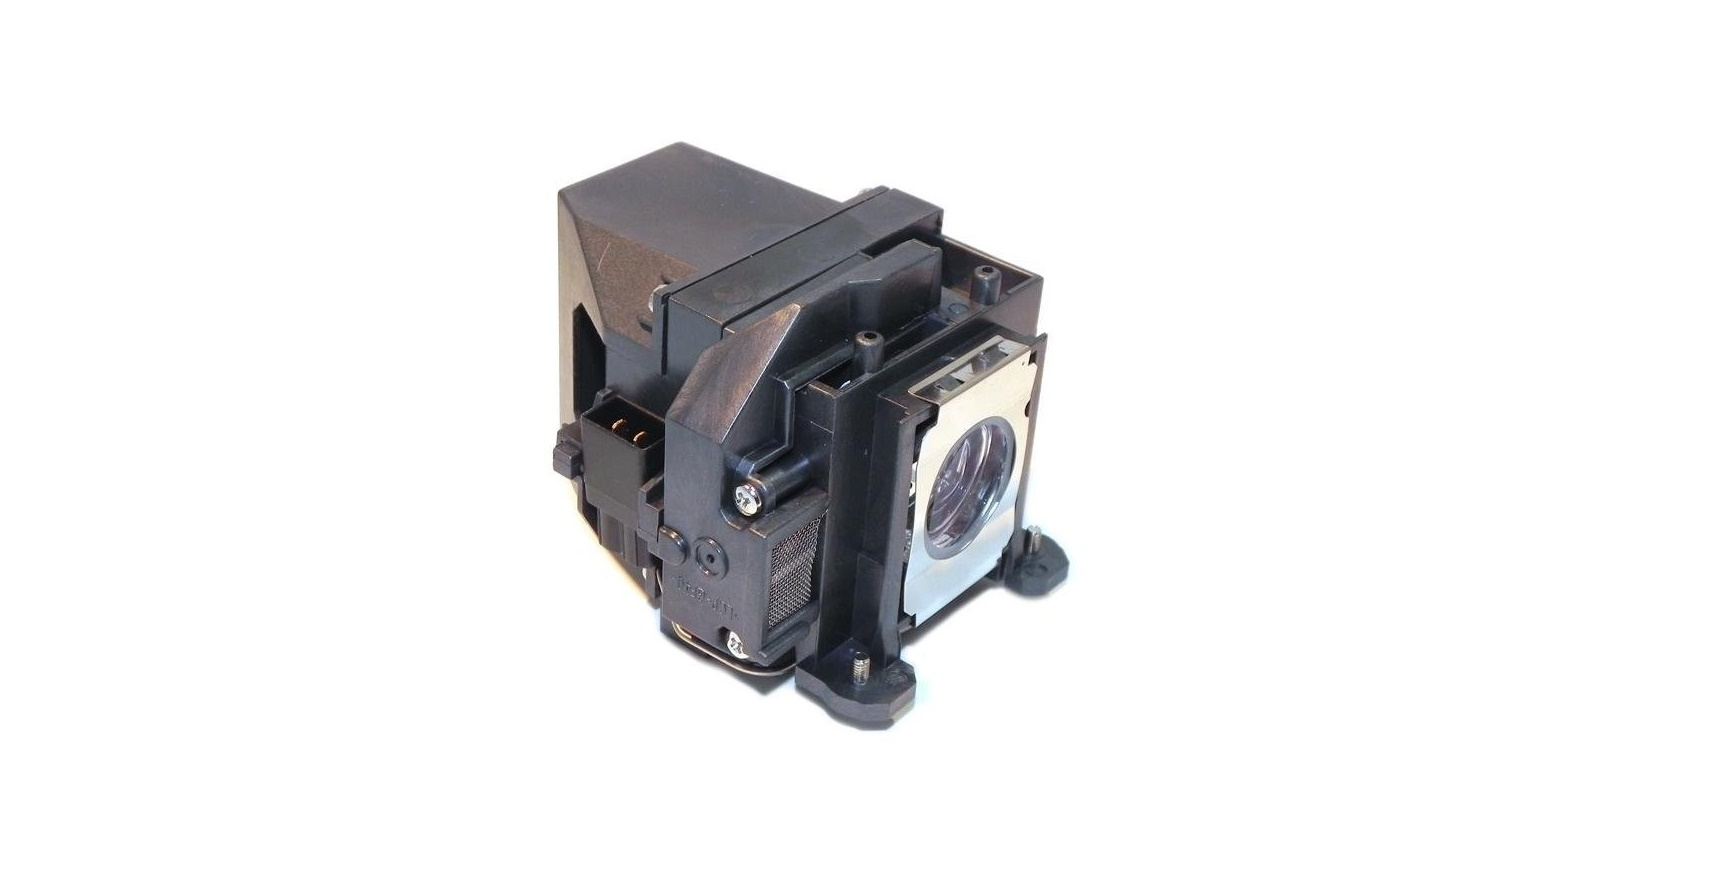 Ereplacements 230W Projector Lamp For Epson EB-440 ELPLP57-ER